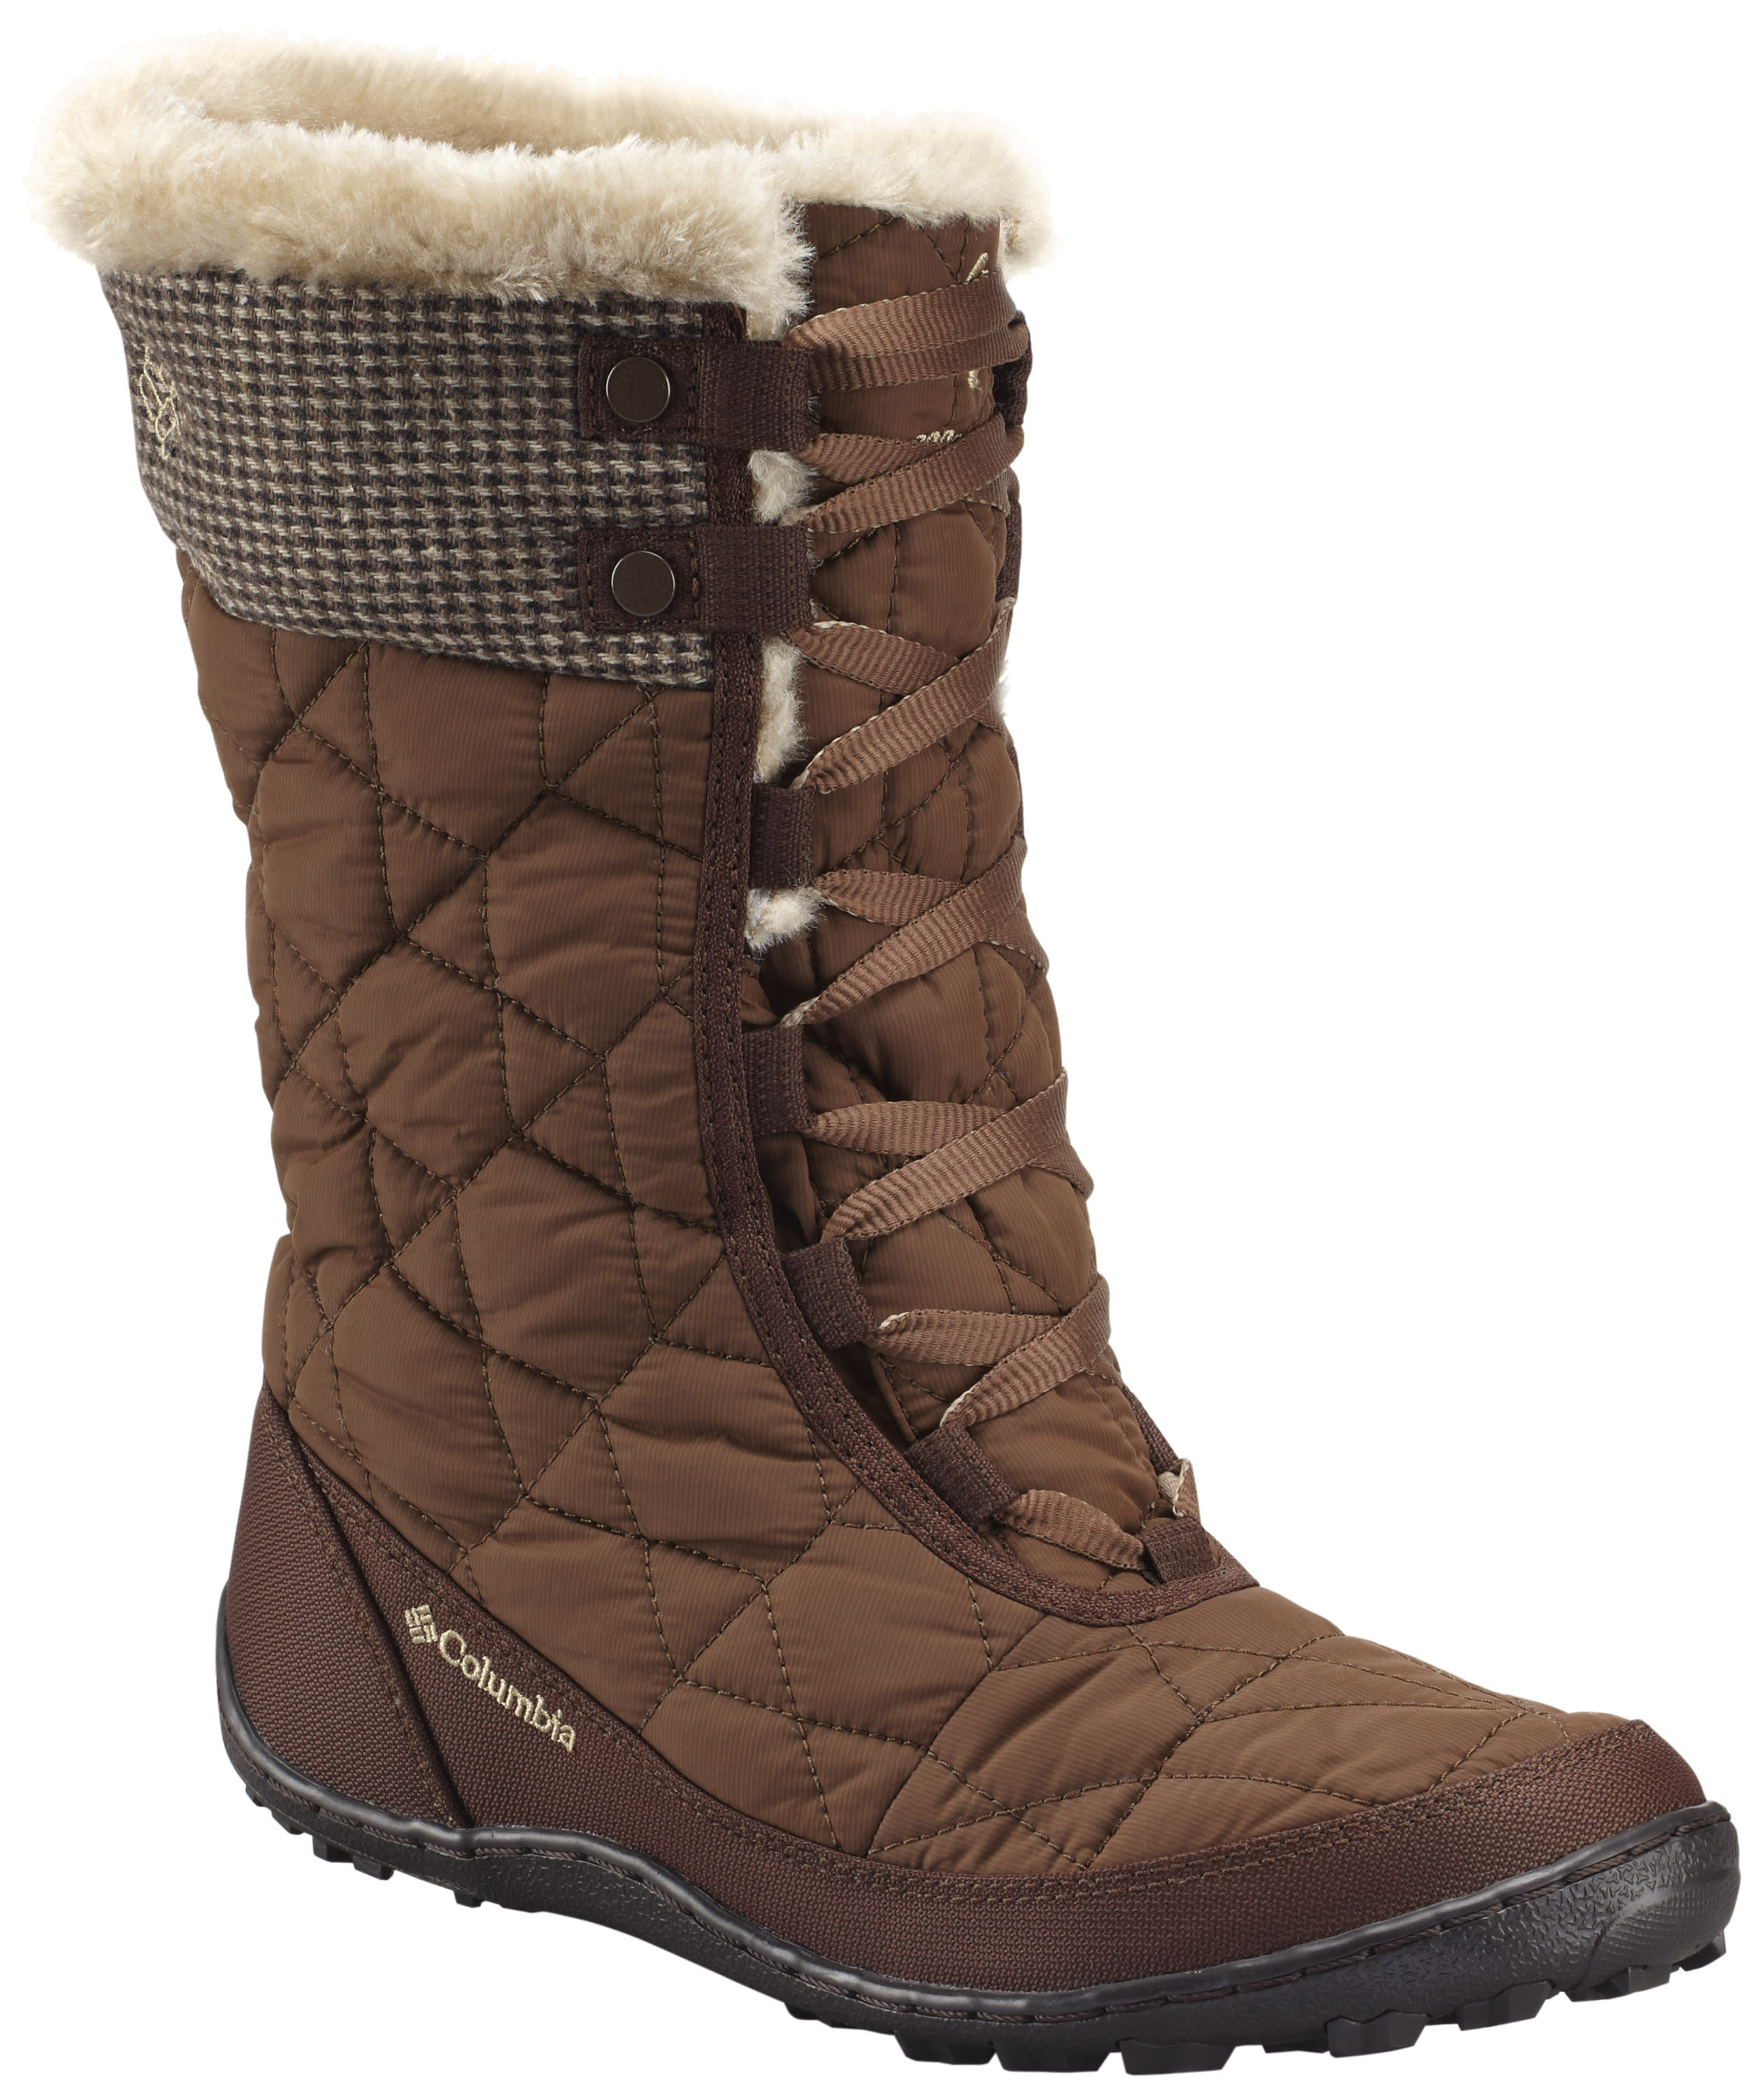 where to buy columbia snow boots – Taconic Golf Club